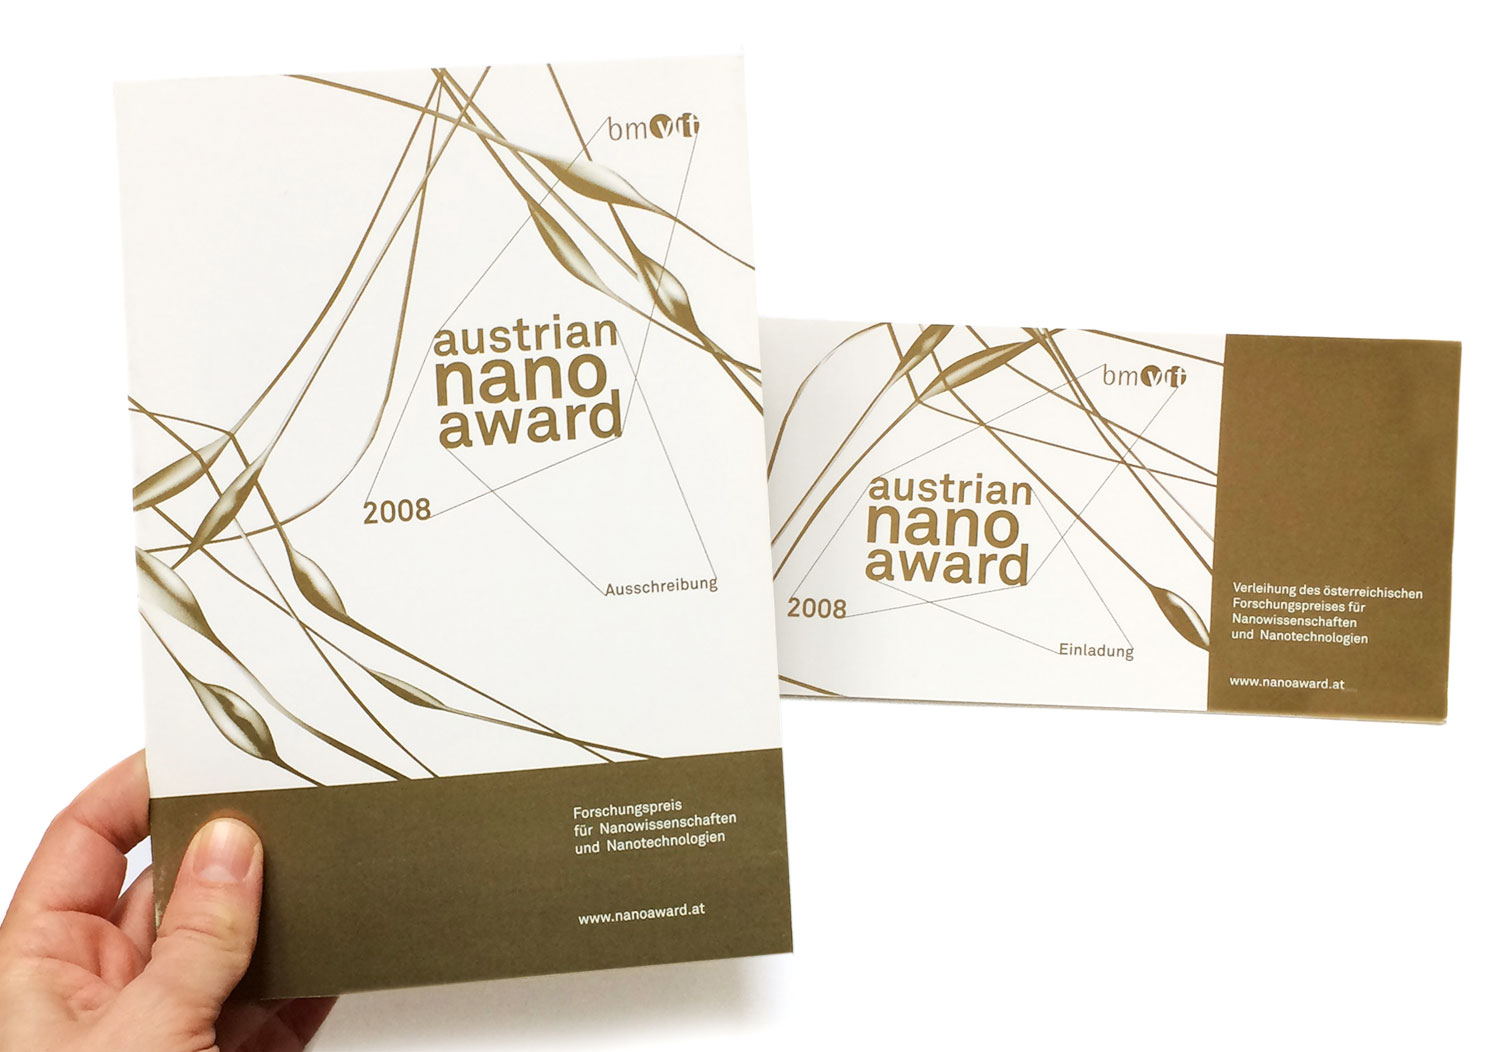 flyer_nanoaward